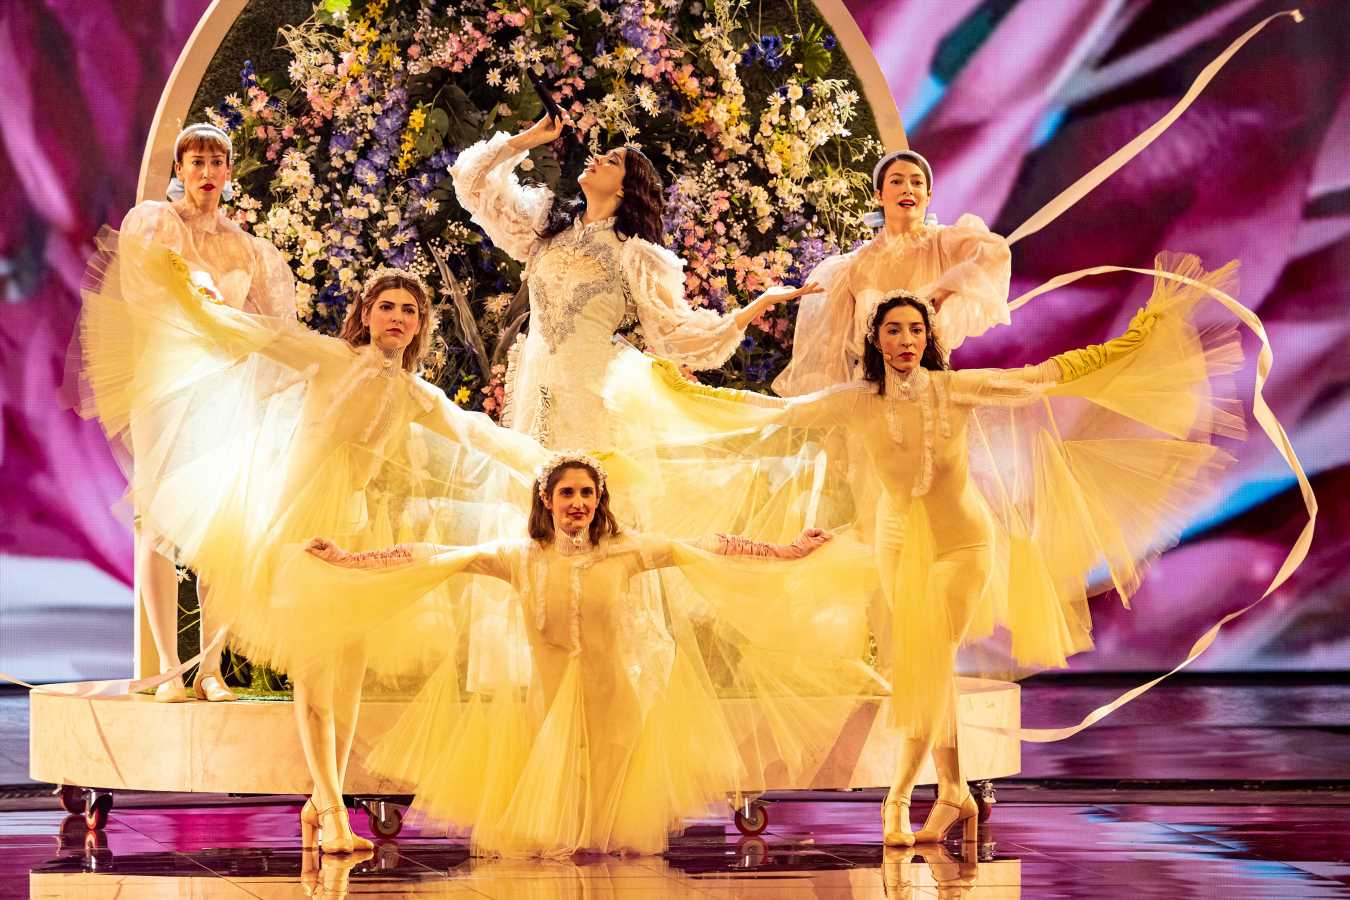 Netflix picks up 2019 and 2020 Eurovision Song Contest seasons